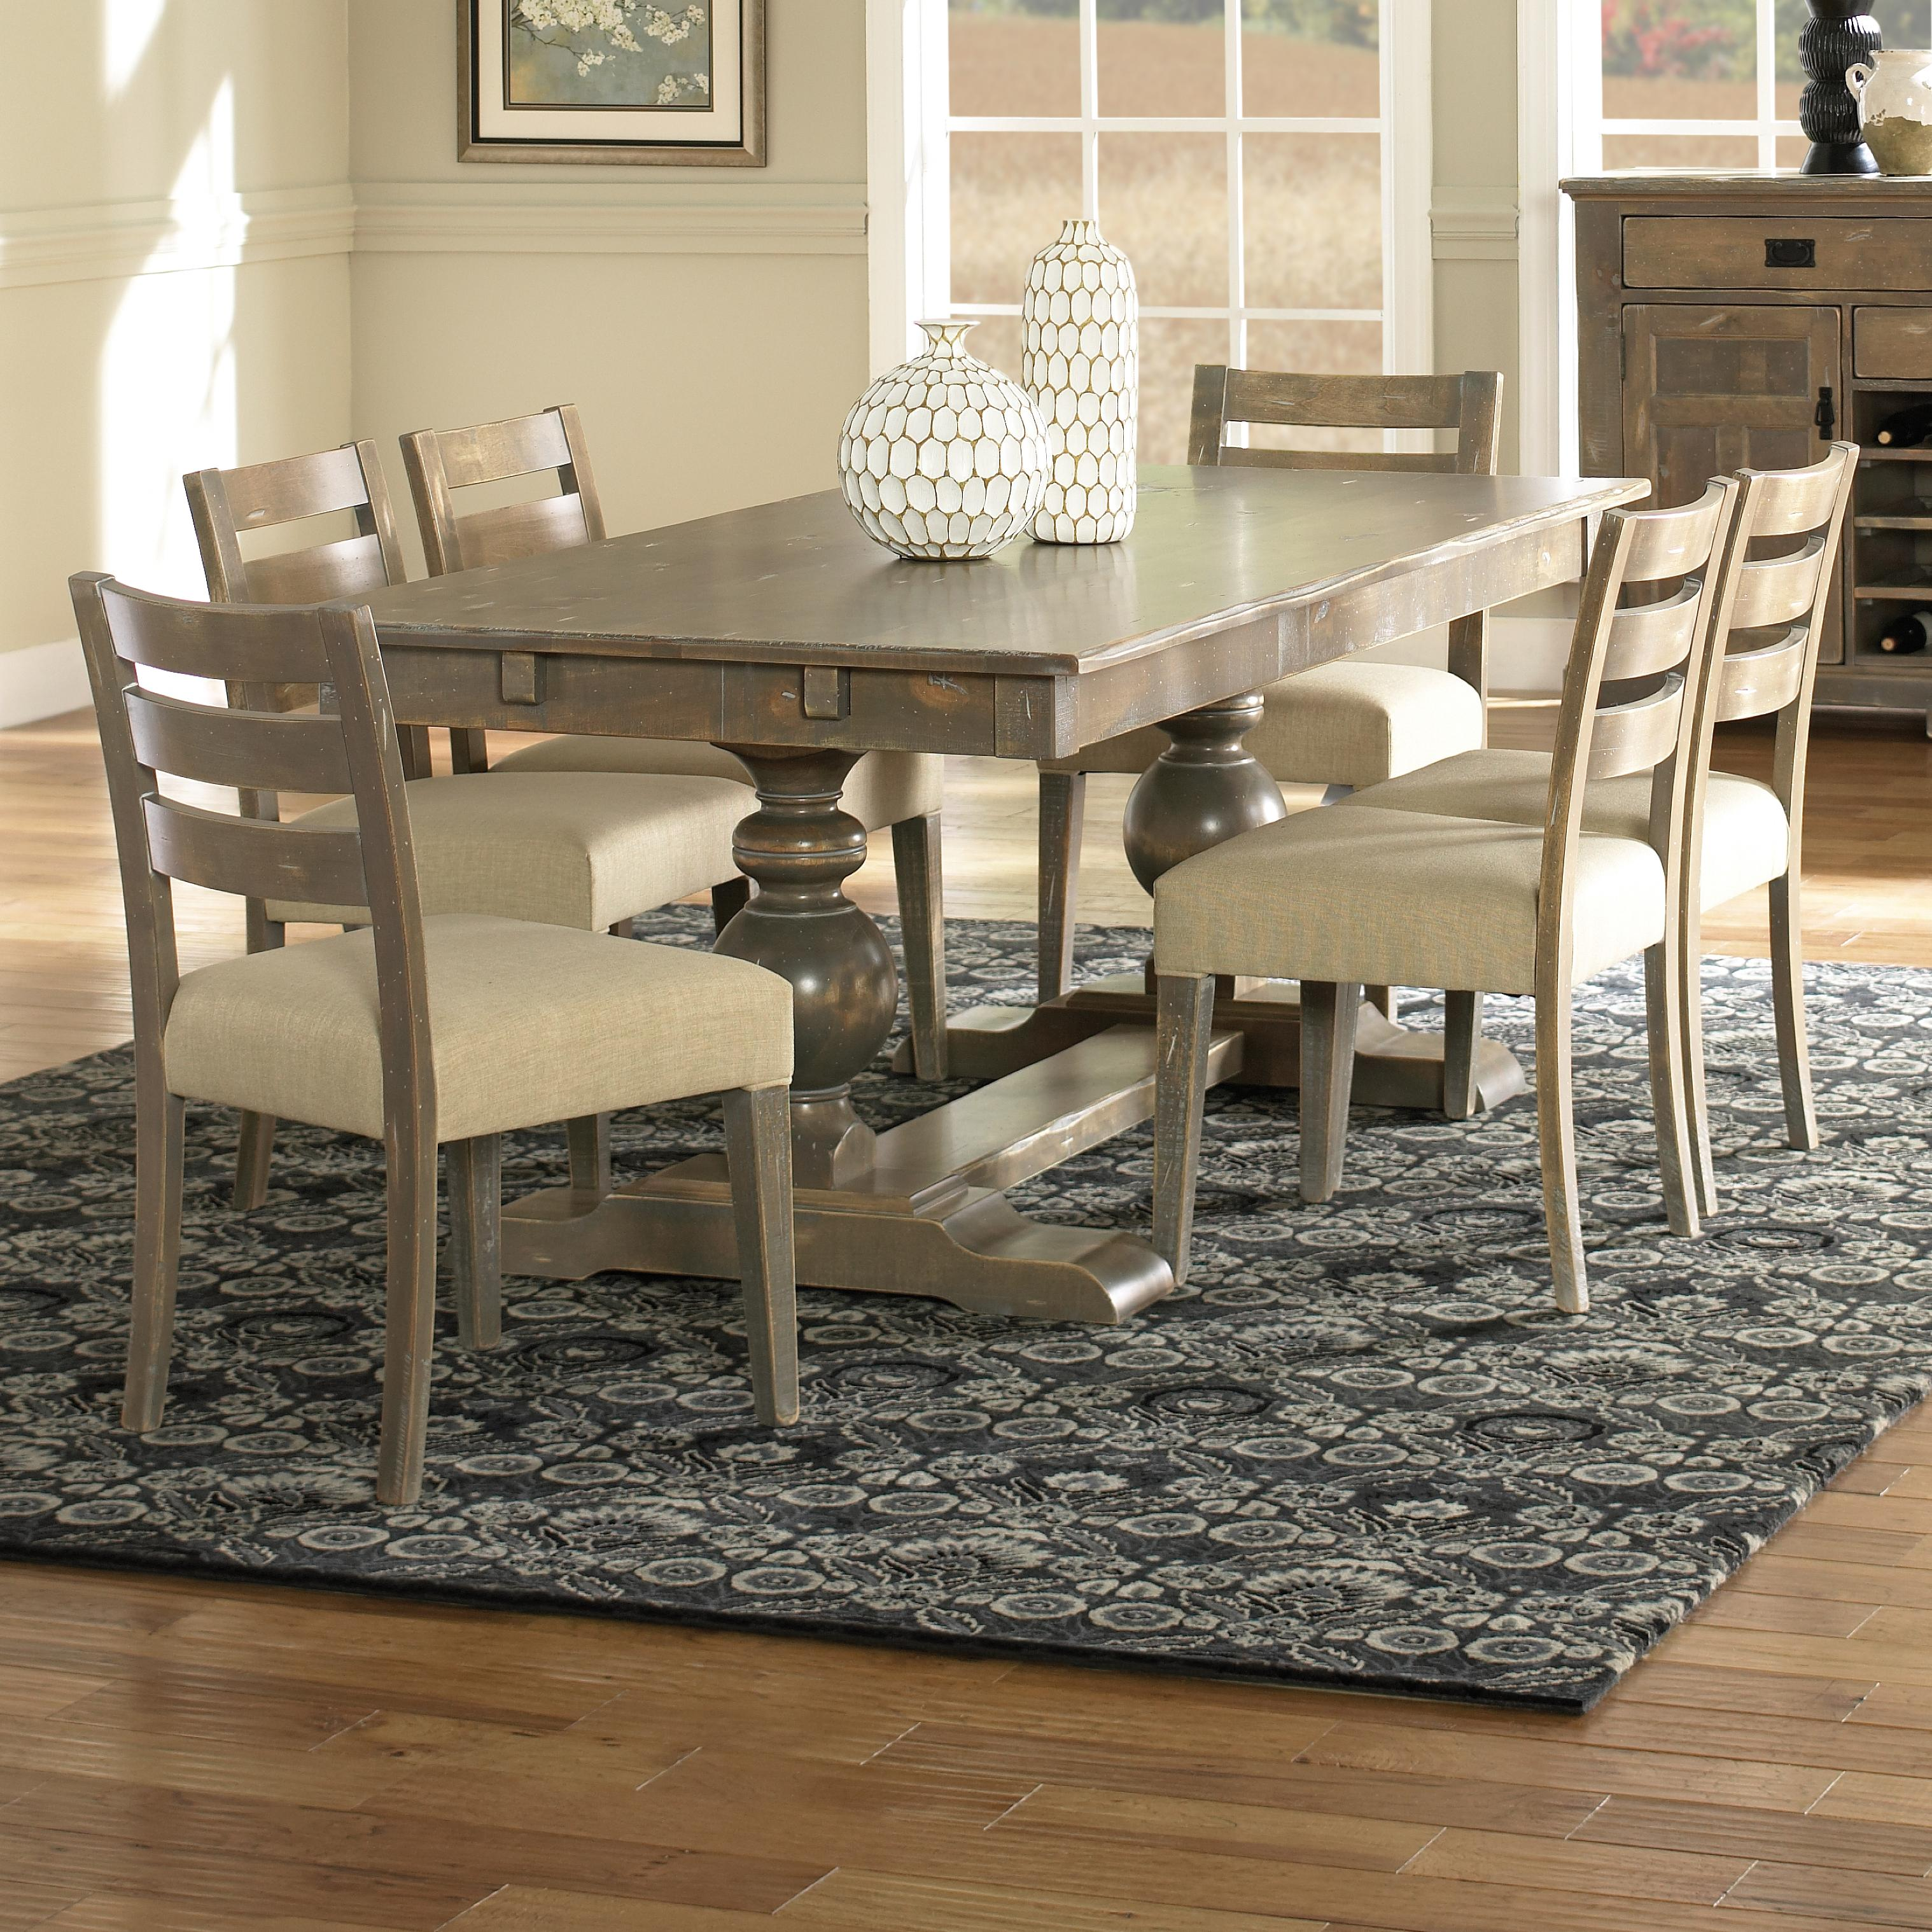 Champlain - Custom Dining Customizable Rectangular Table Set by Canadel at Jordan's Home Furnishings